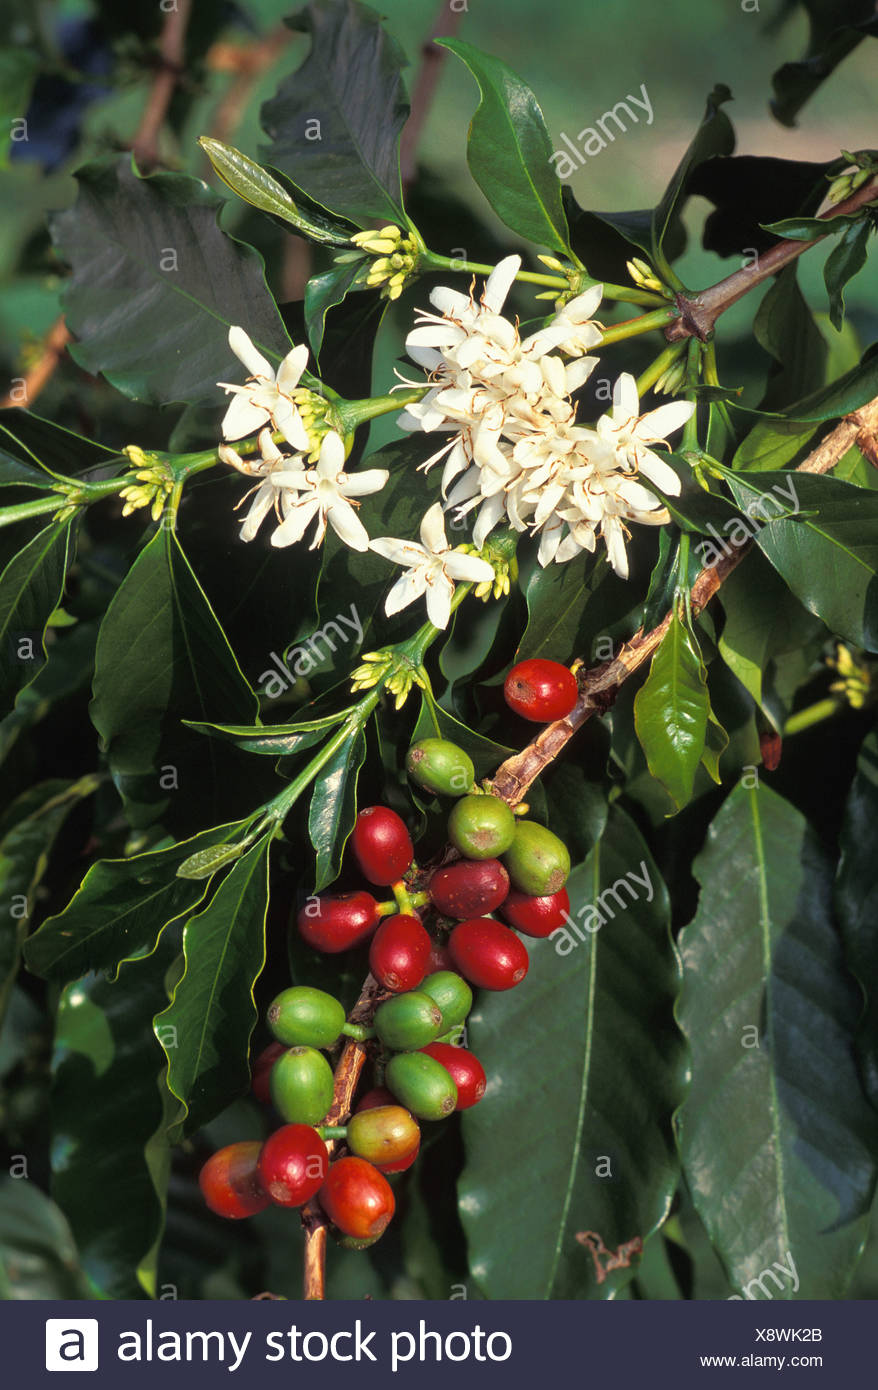 Kona Coffee Plantclose Up Of Beans Red Green With White Flowers